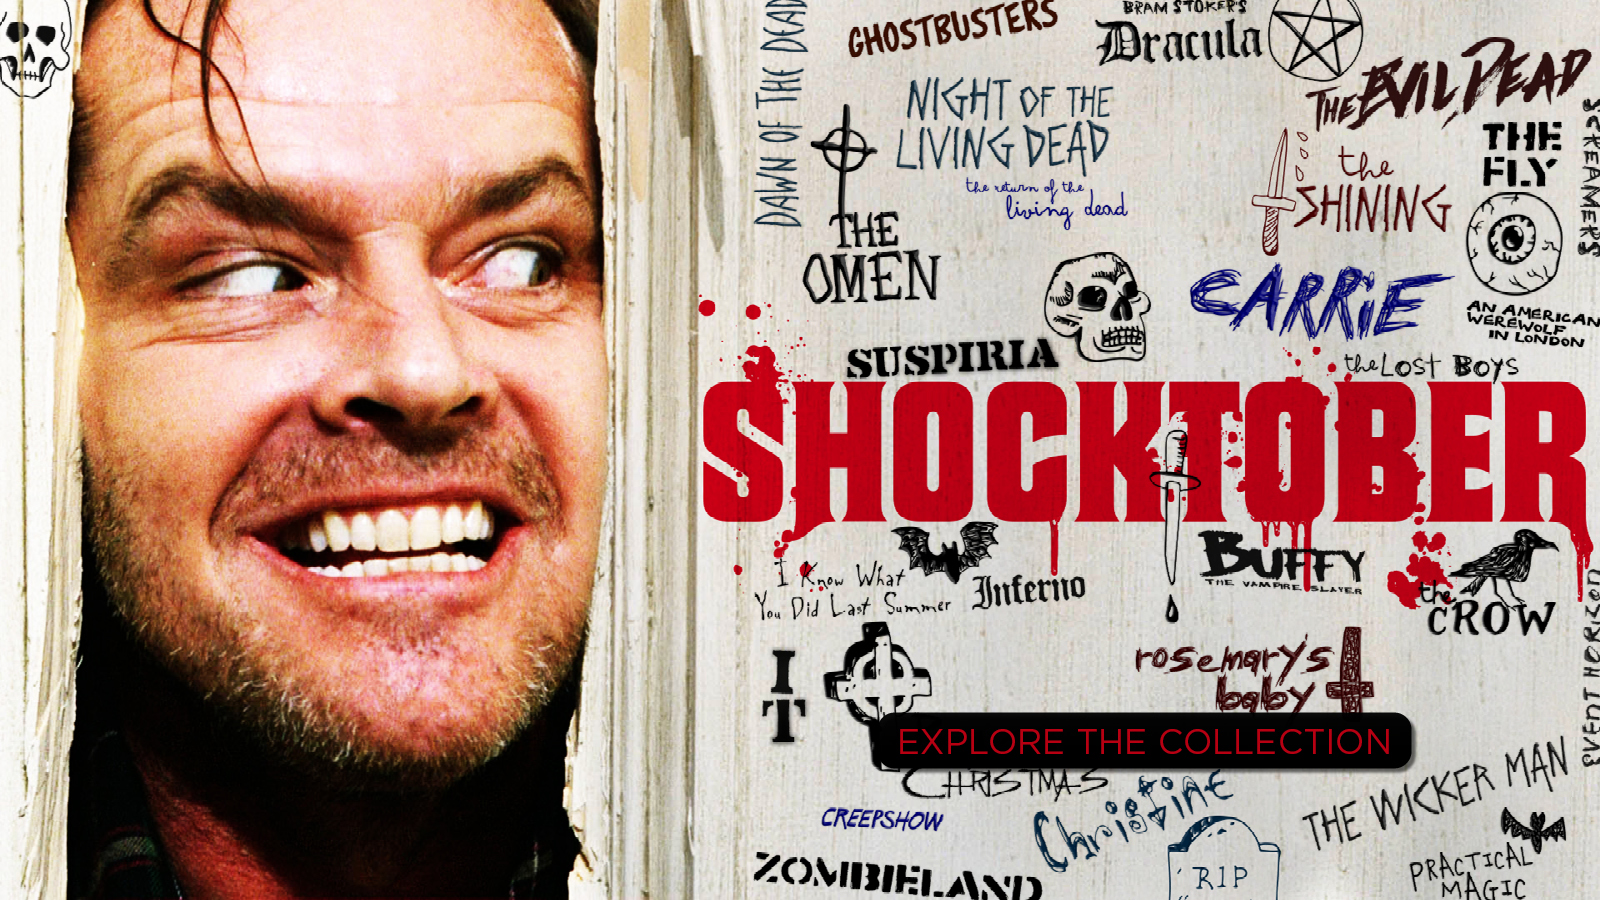 Shocktober: Explore the collection